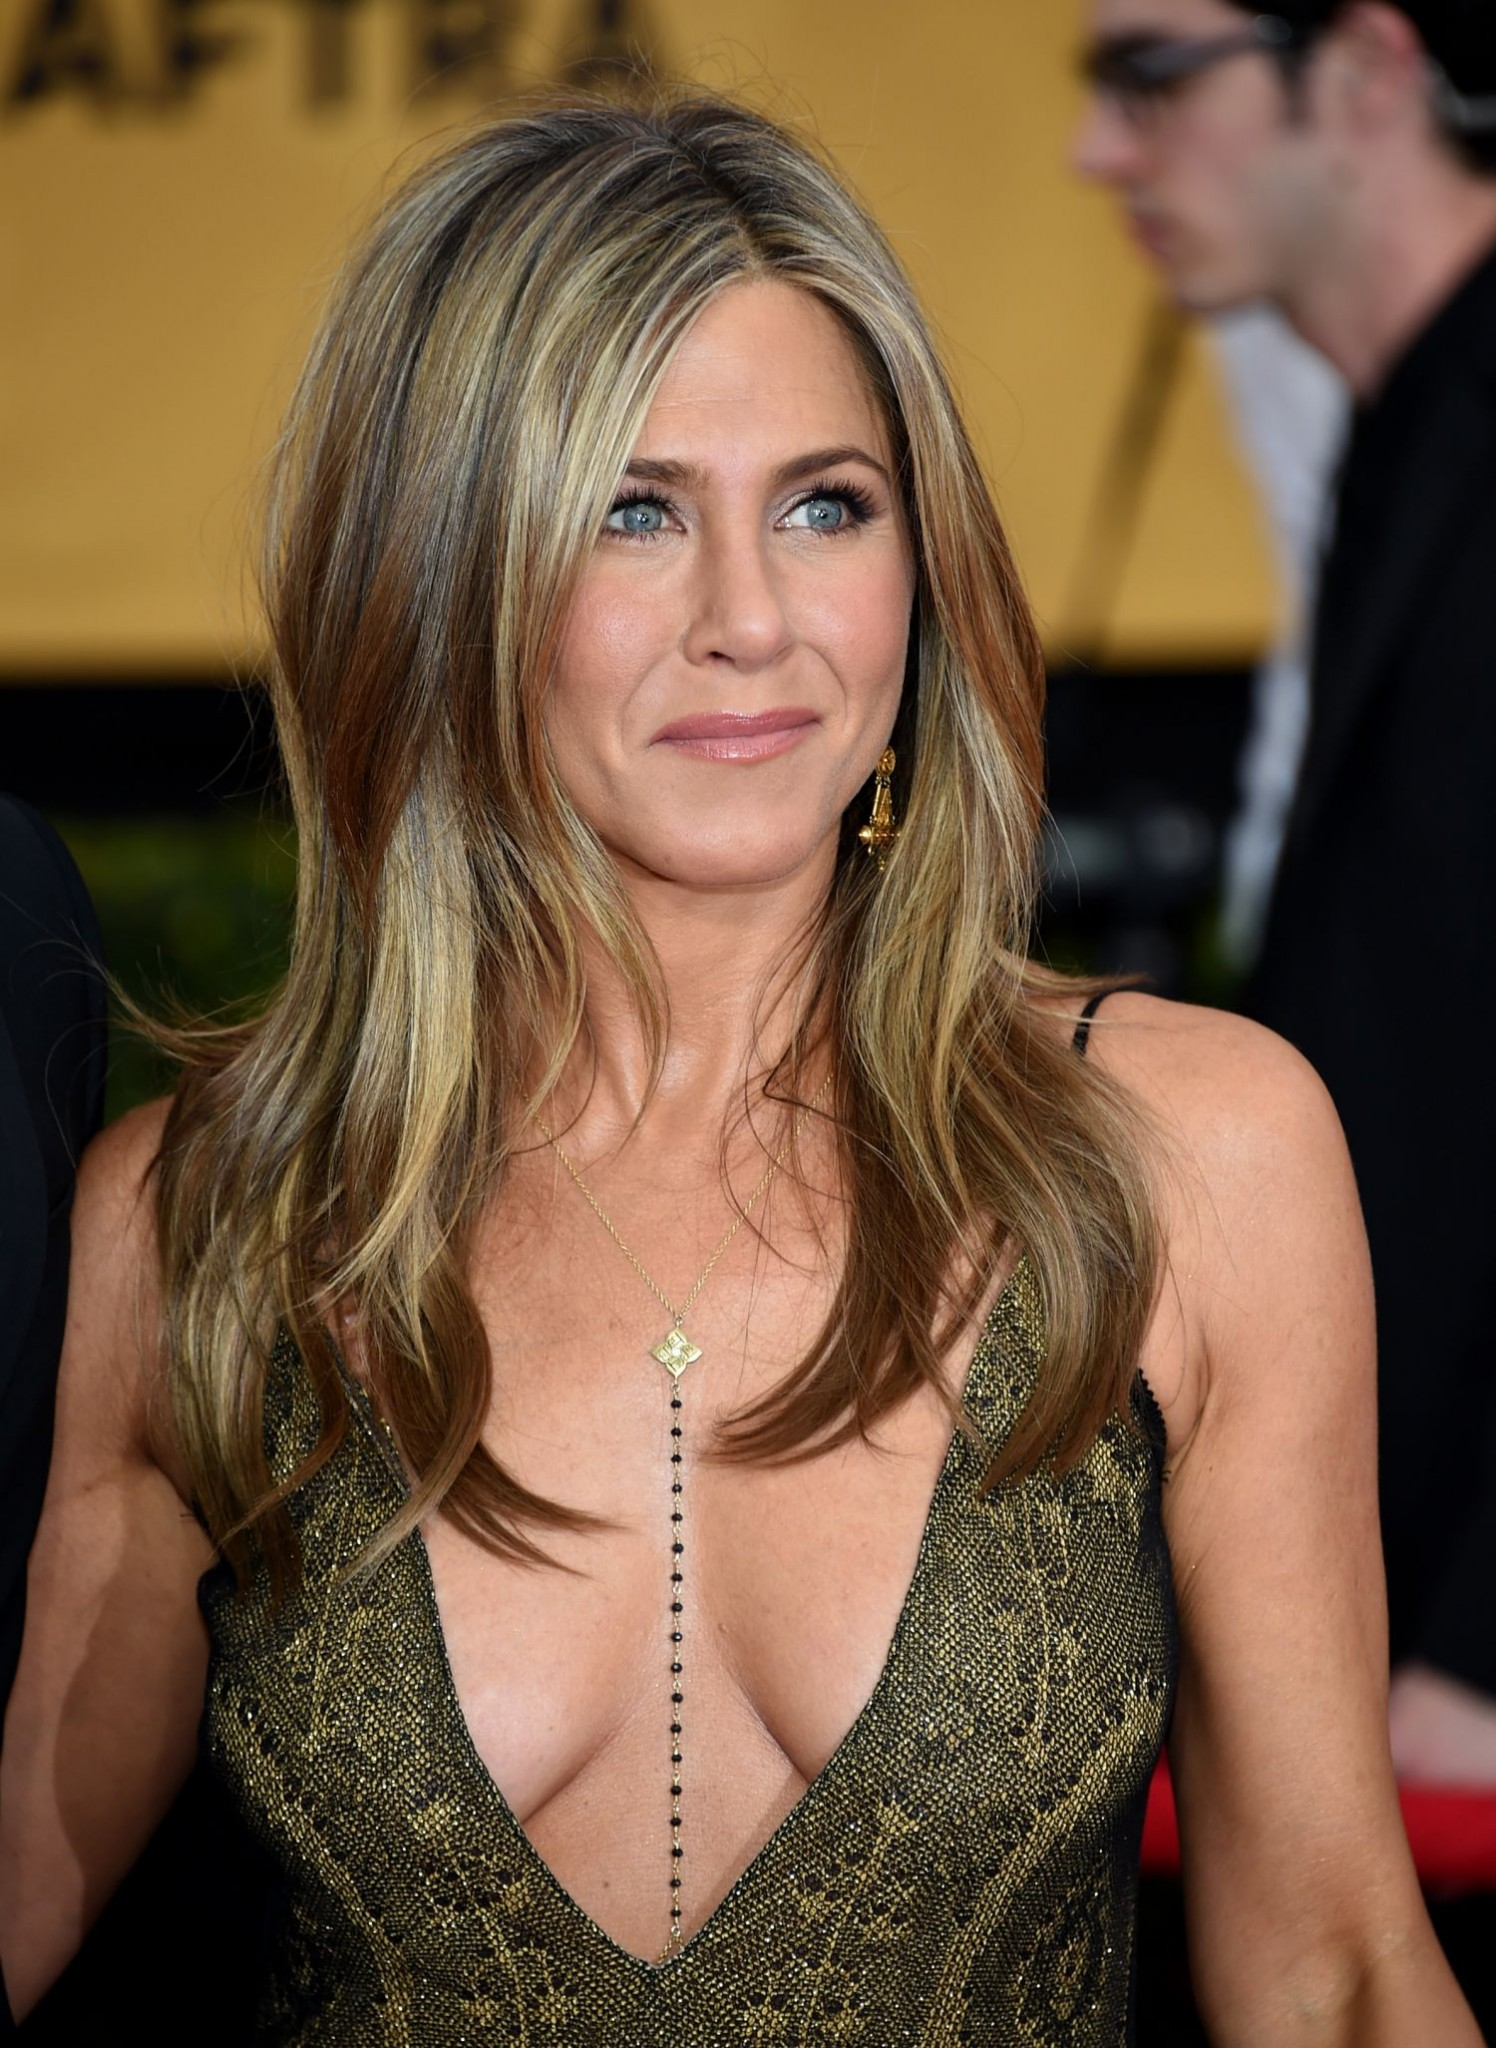 jennifer-aniston-cleavage-at-the-annual-sag-awards-2